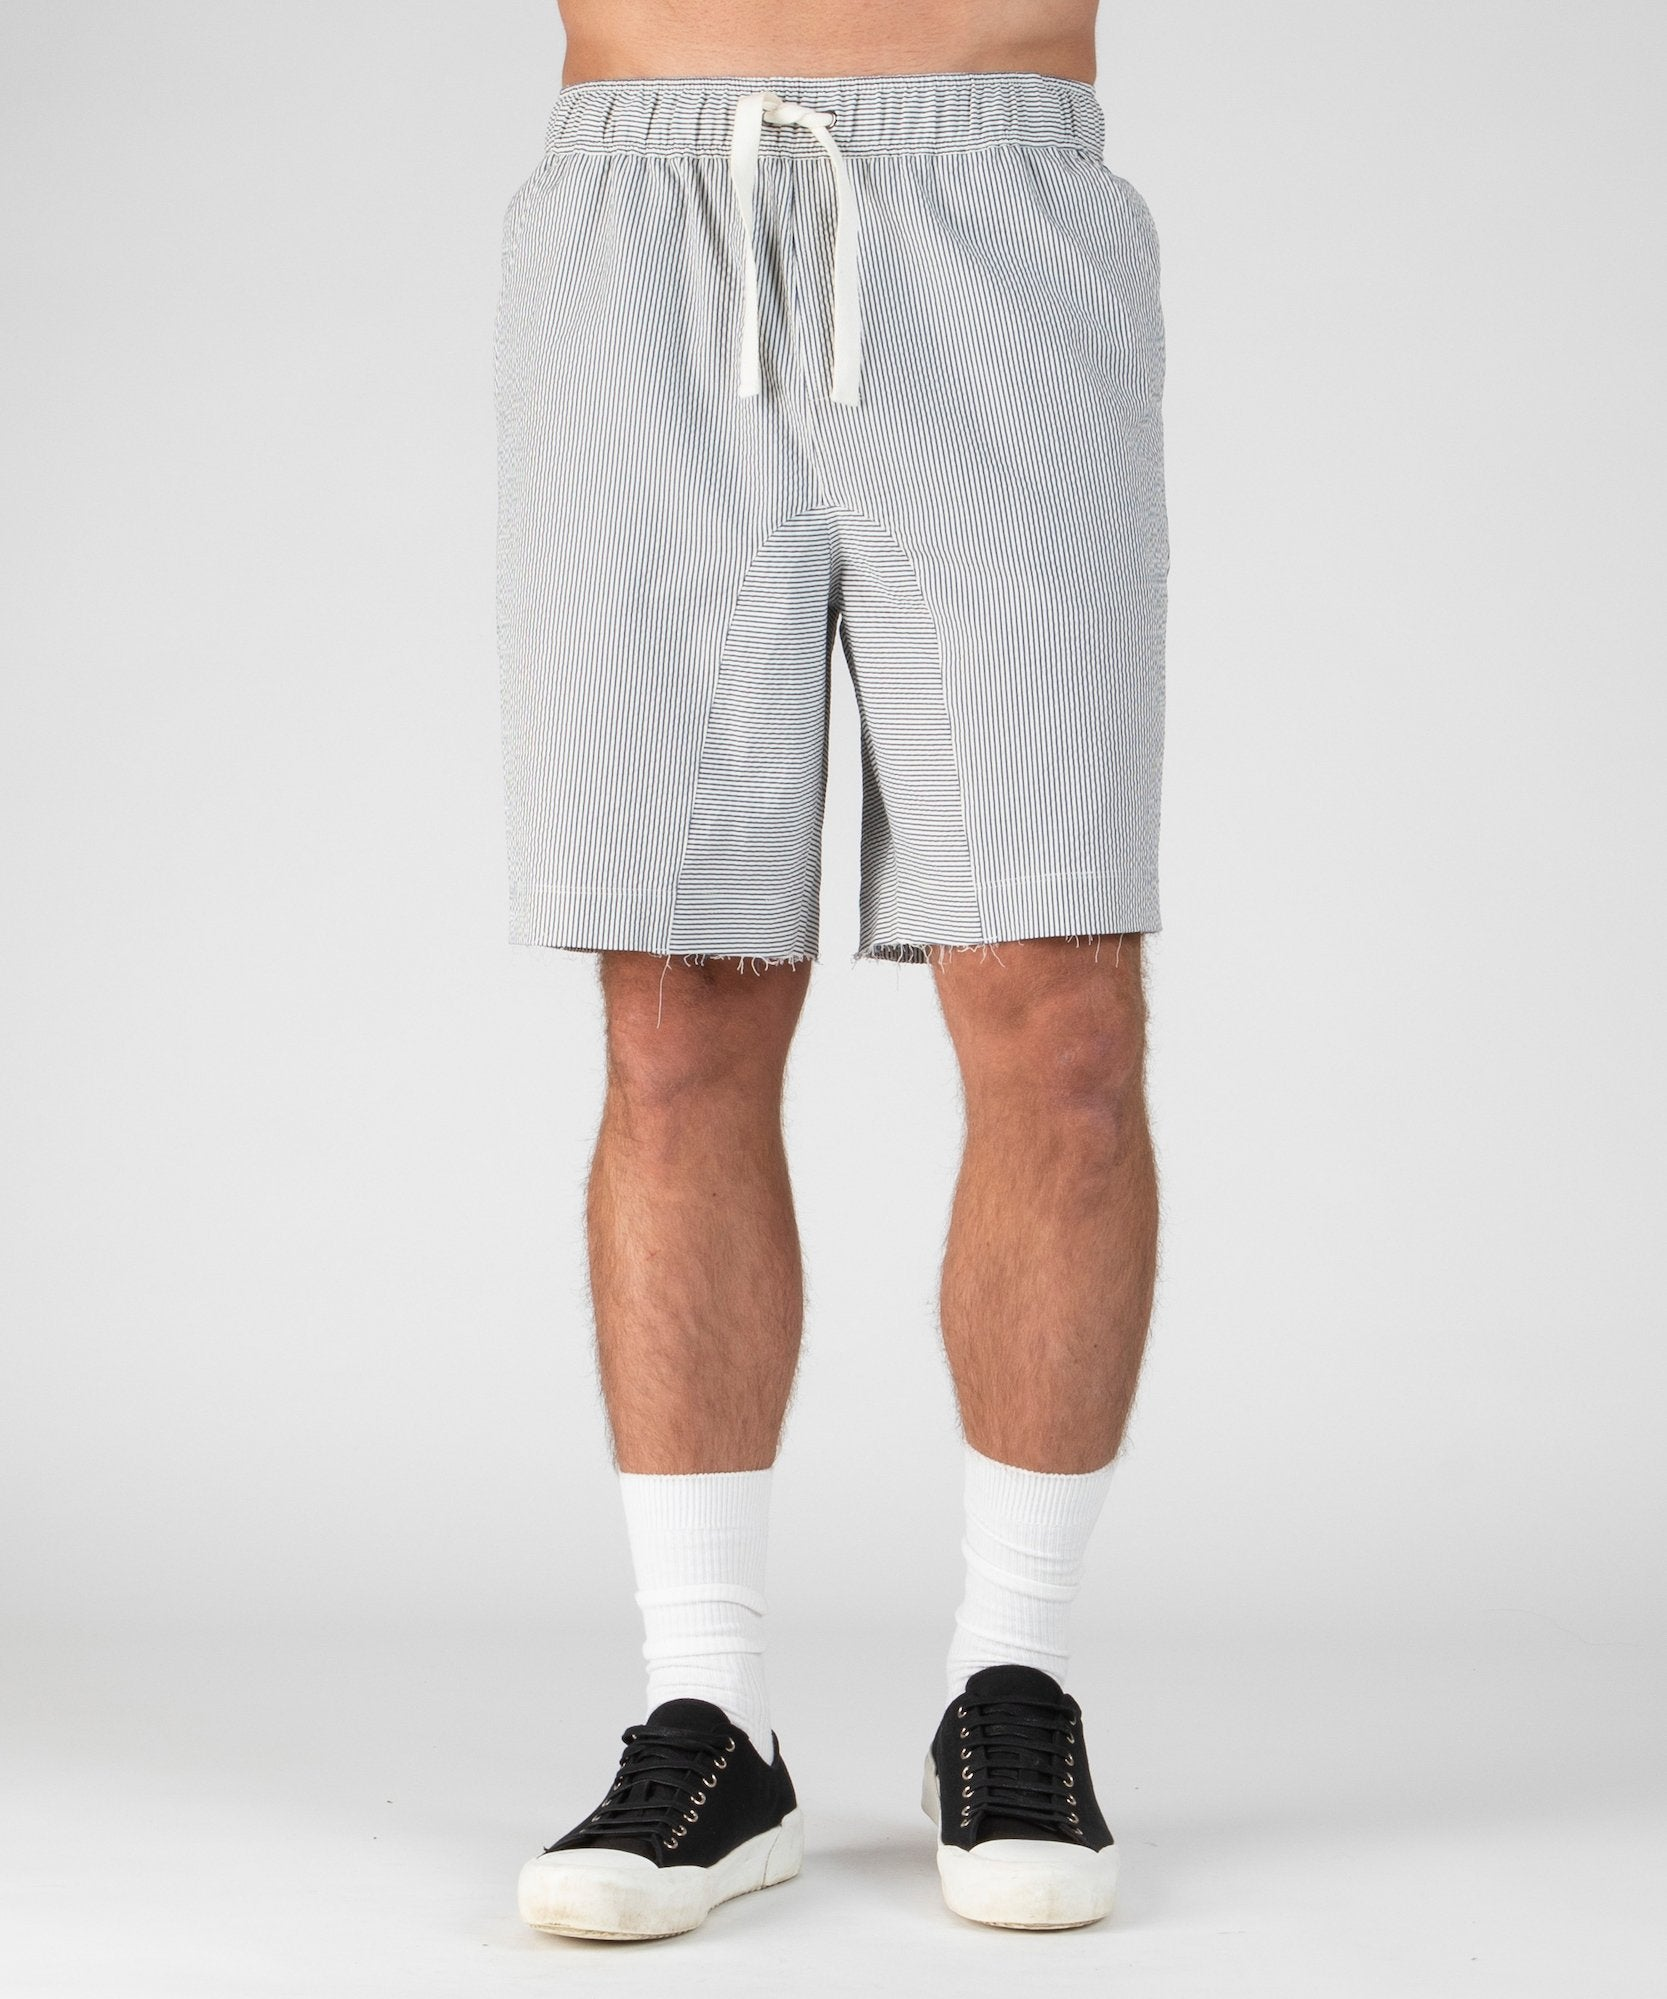 White and Navy Stripe Seersucker Pull-On Shorts - Men's Luxe Shorts by ATM Anthony Thomas Melillo